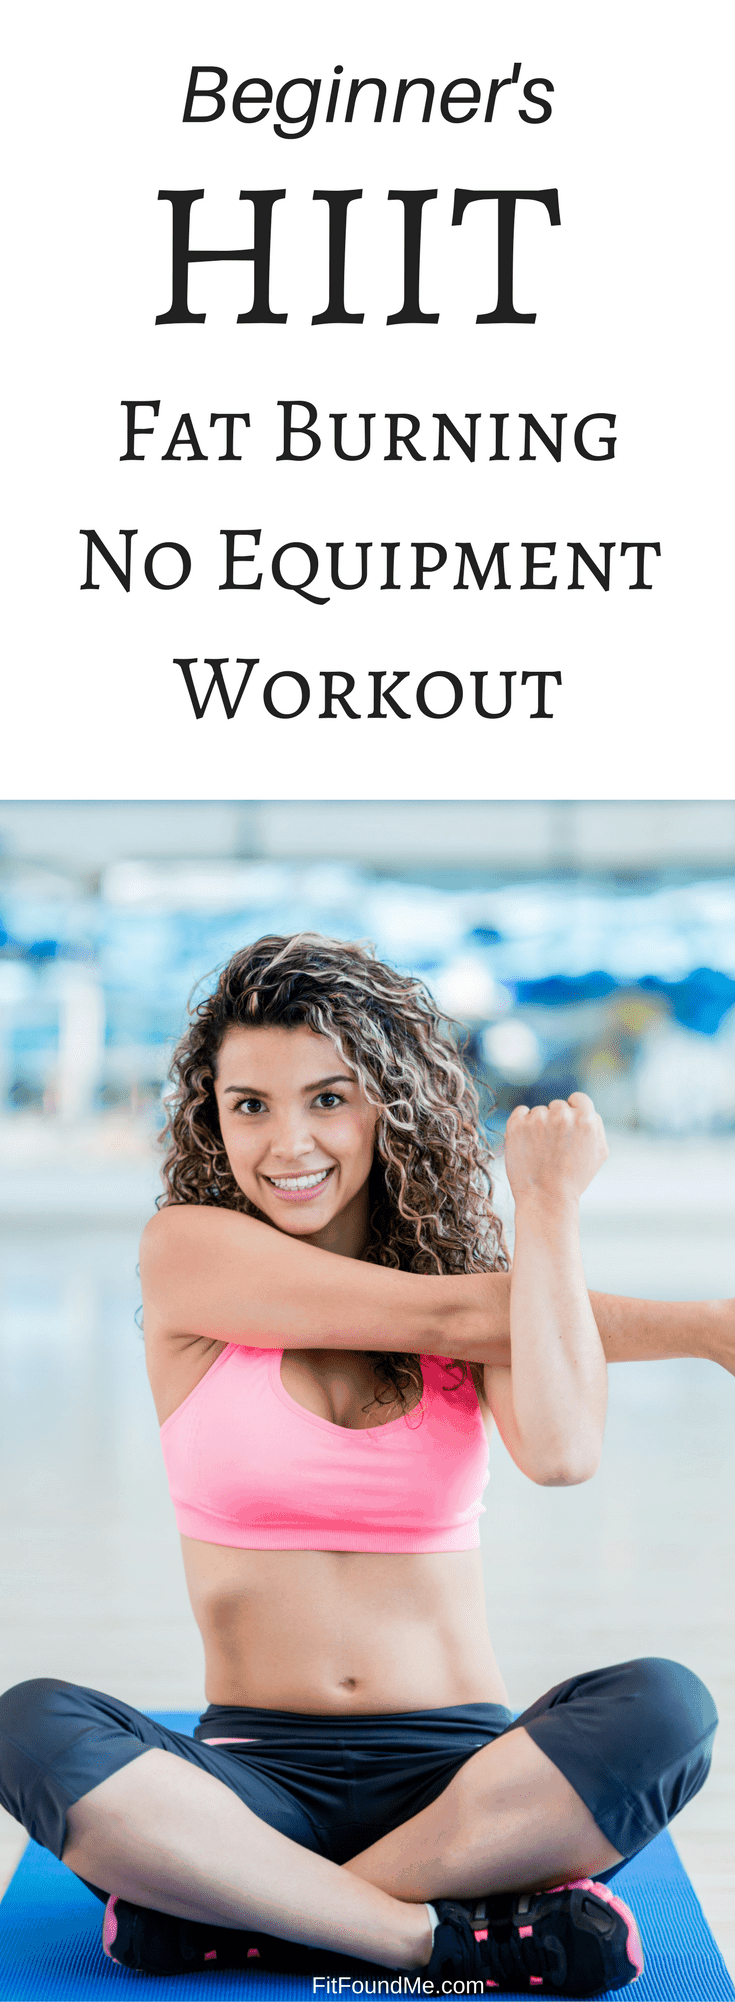 beginner's HIIT fat burning, no equipment workout